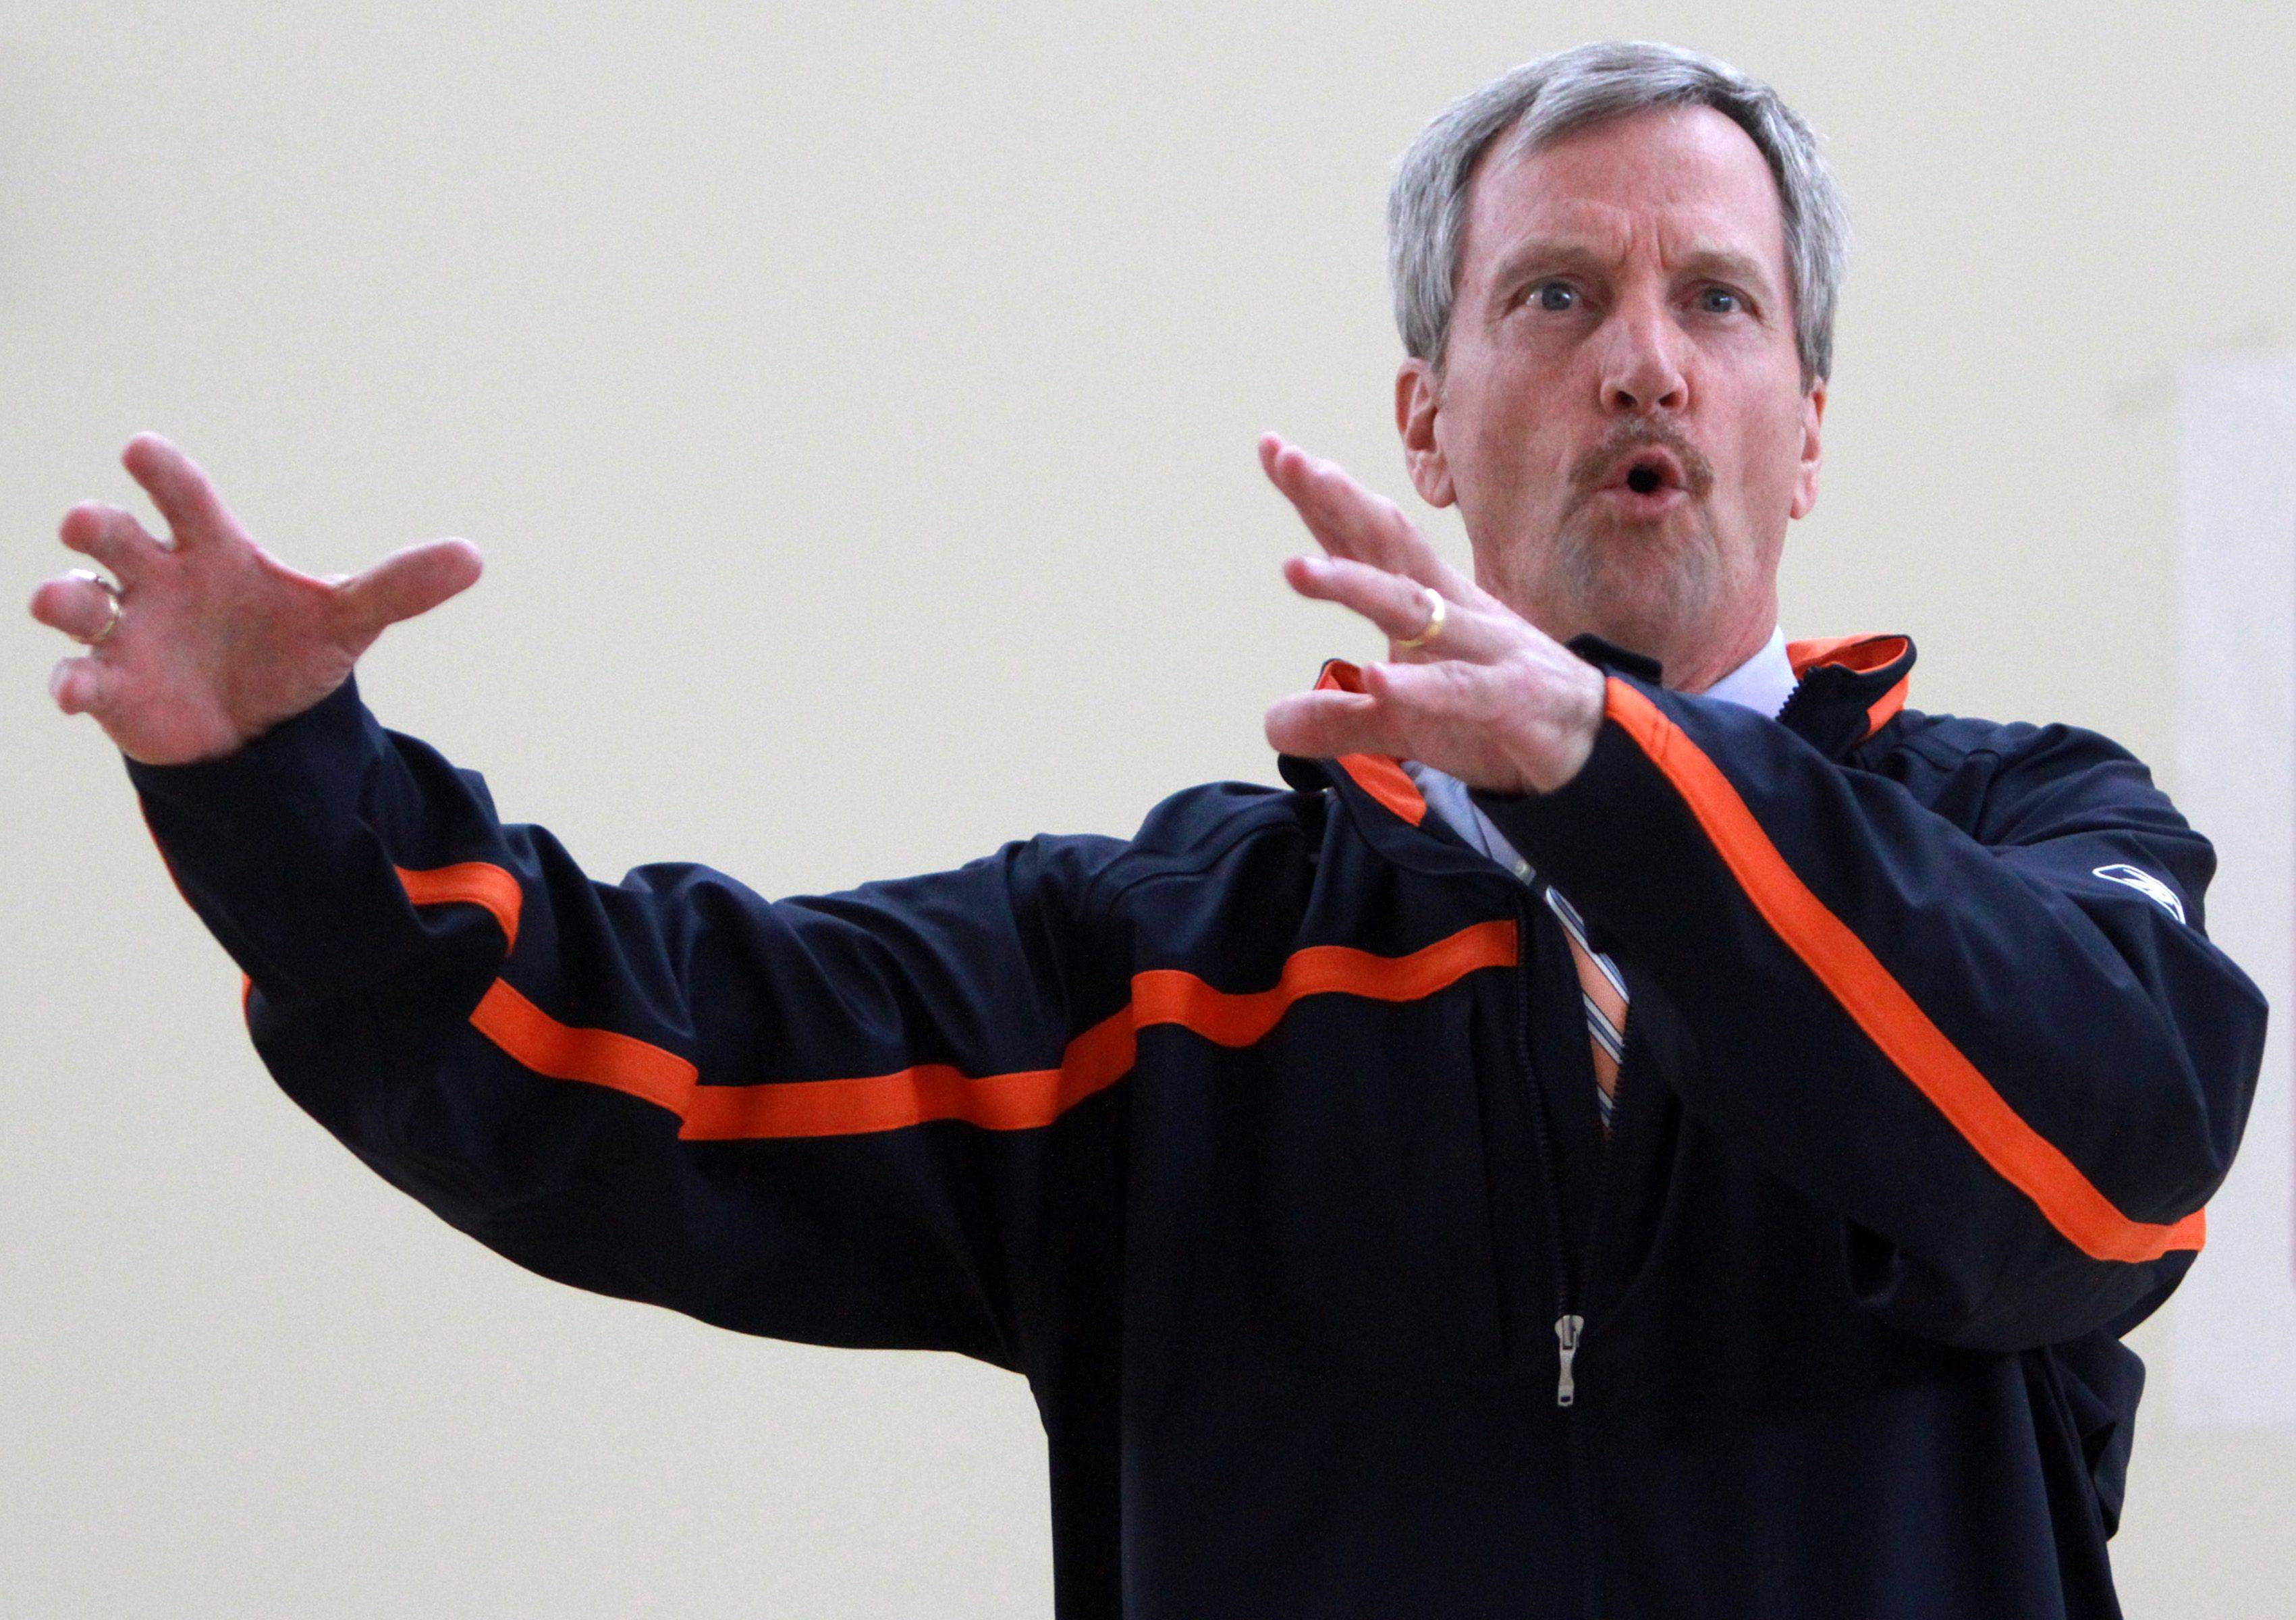 George McCaskey, chairman of the Chicago Bears, explains how the Bears honor veterans before each home game while speaking to members of the U.S. Reserve 226th Port Management Team at Fort Sheridan on Thursday.